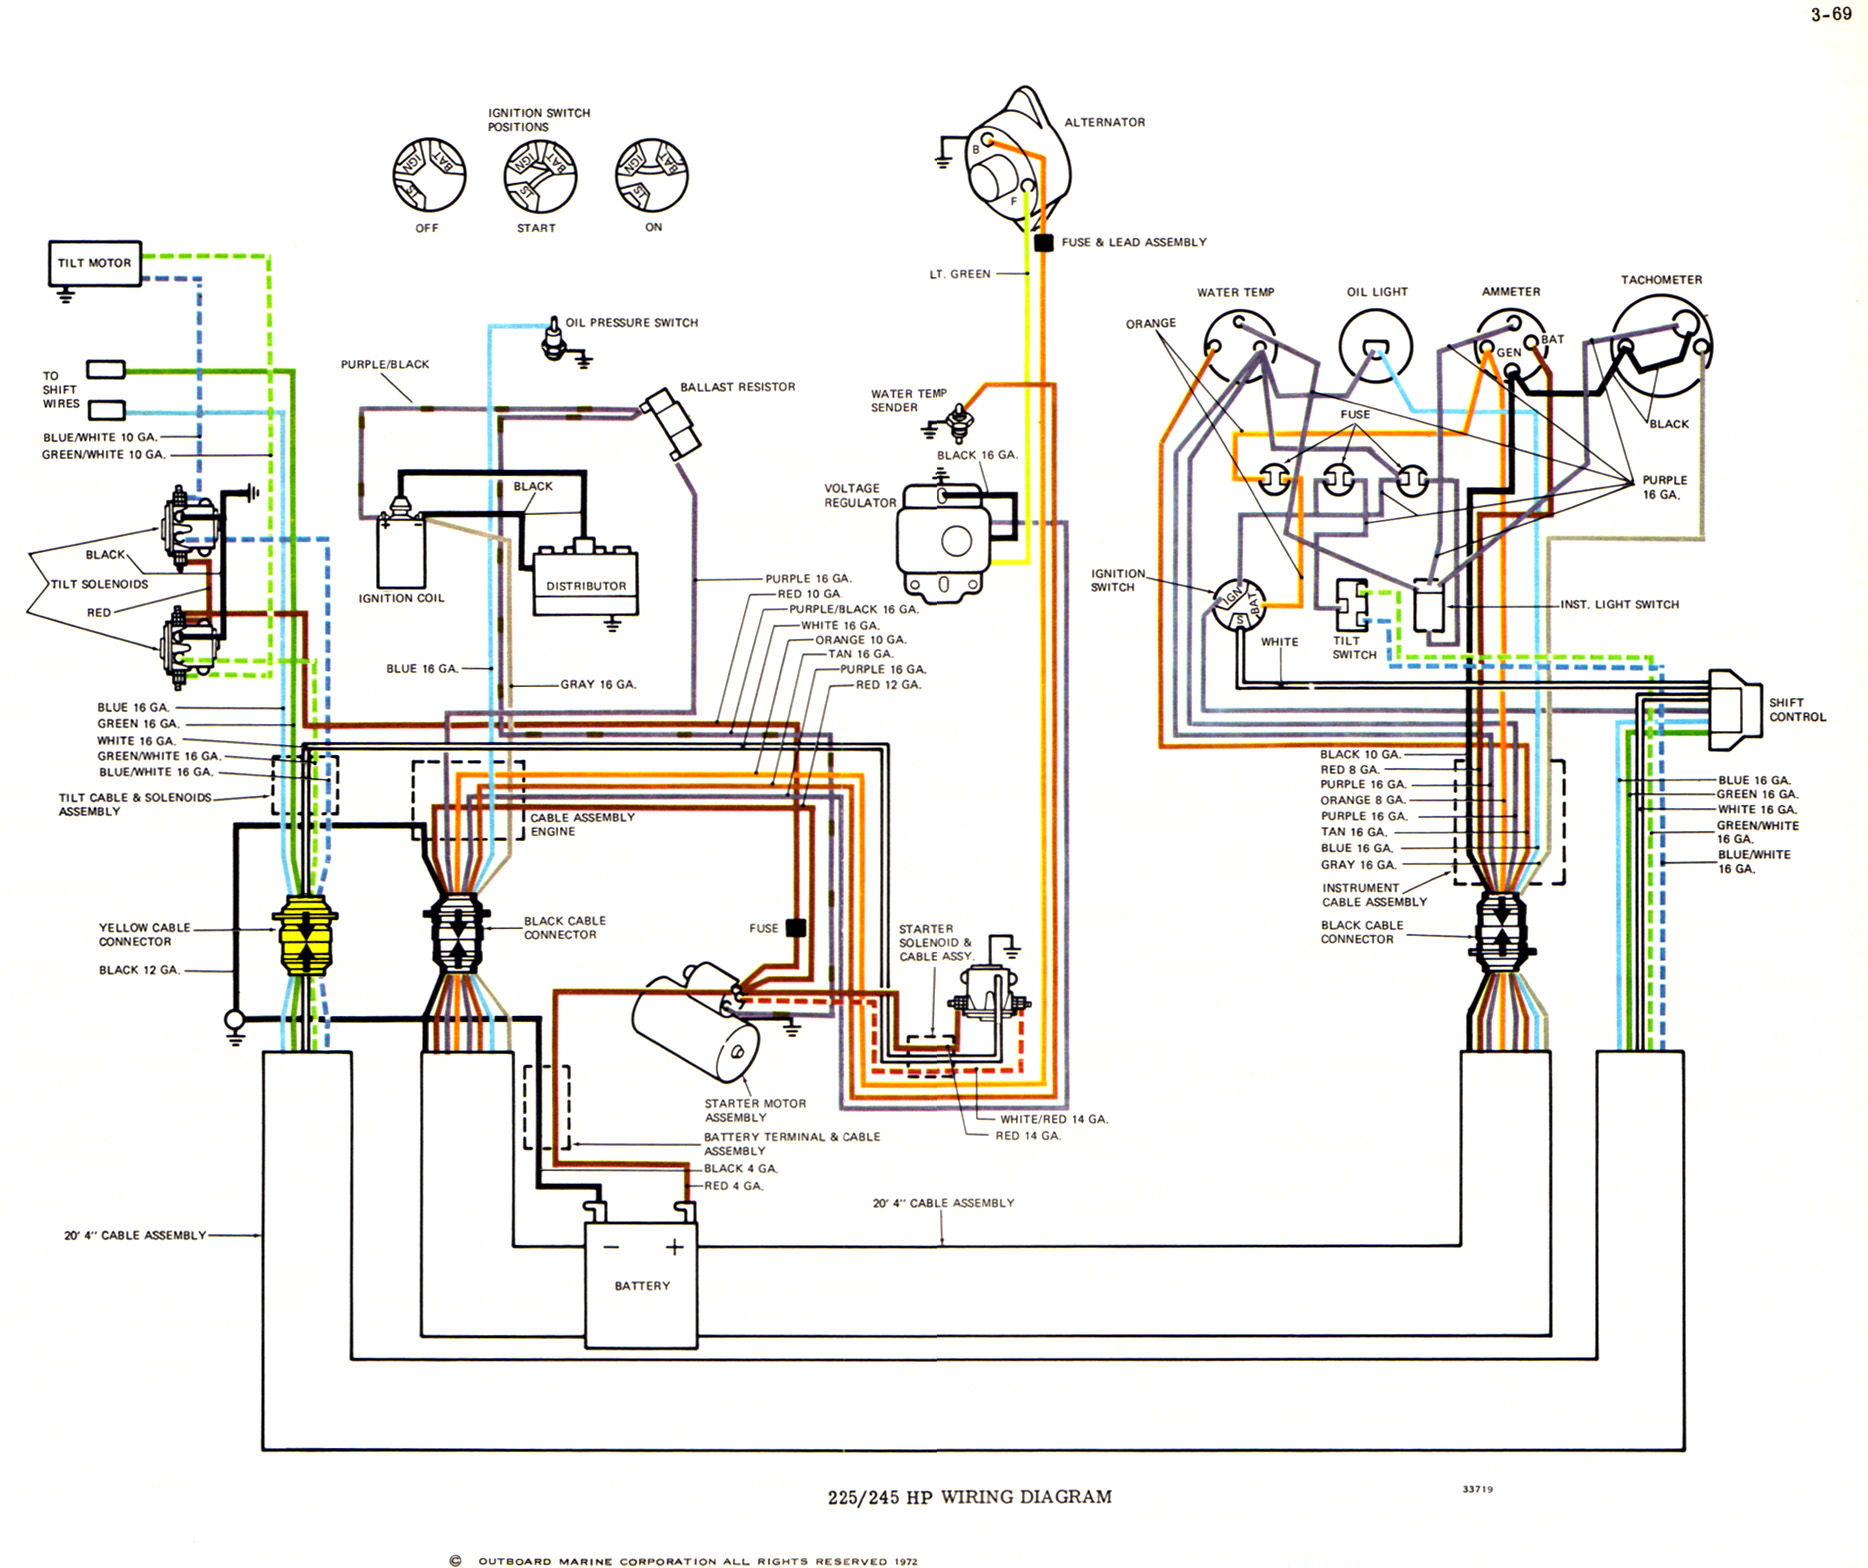 Mercruiser 4 3 Wiring Diagram,Wiring.Free Download Printable ...